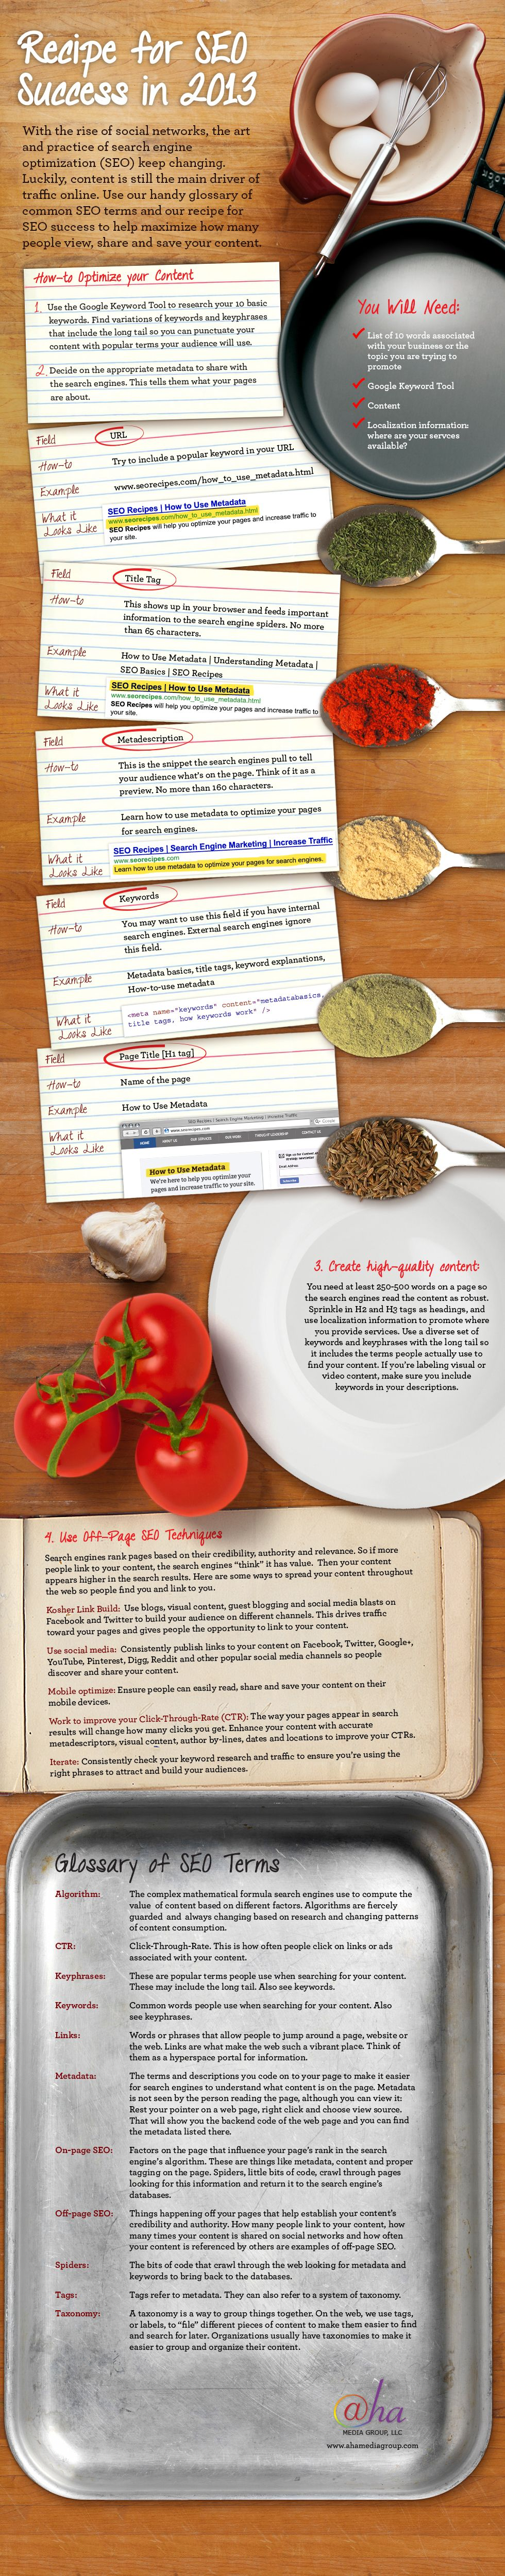 Recipe for #SEO Success in 2013 #Infographic